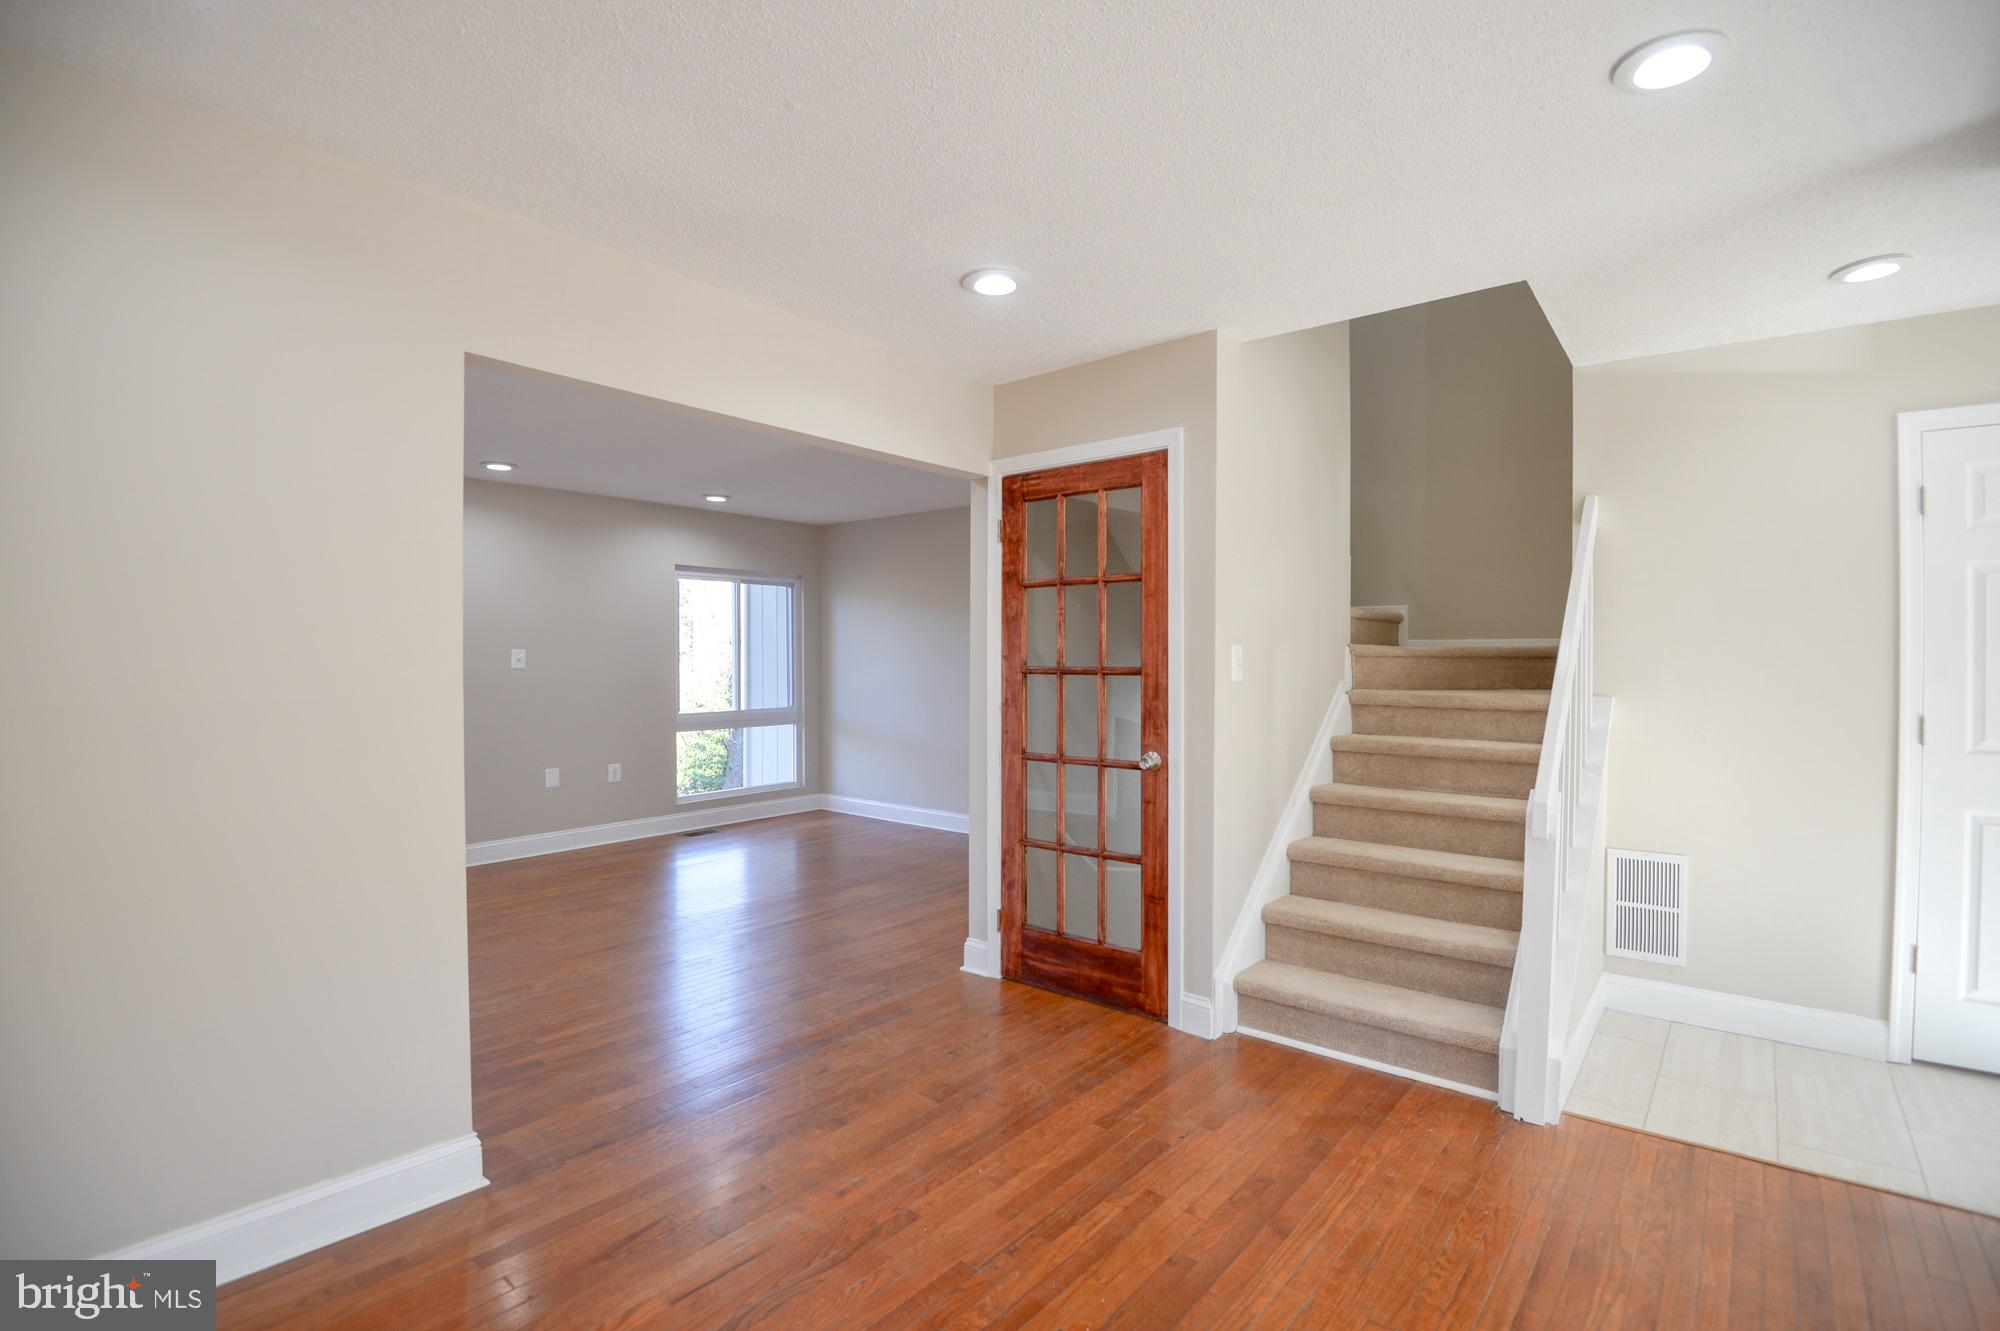 Immaculate and newly renovated 4 bedroom 3 level townhouse, with bright and open concept, recessed l